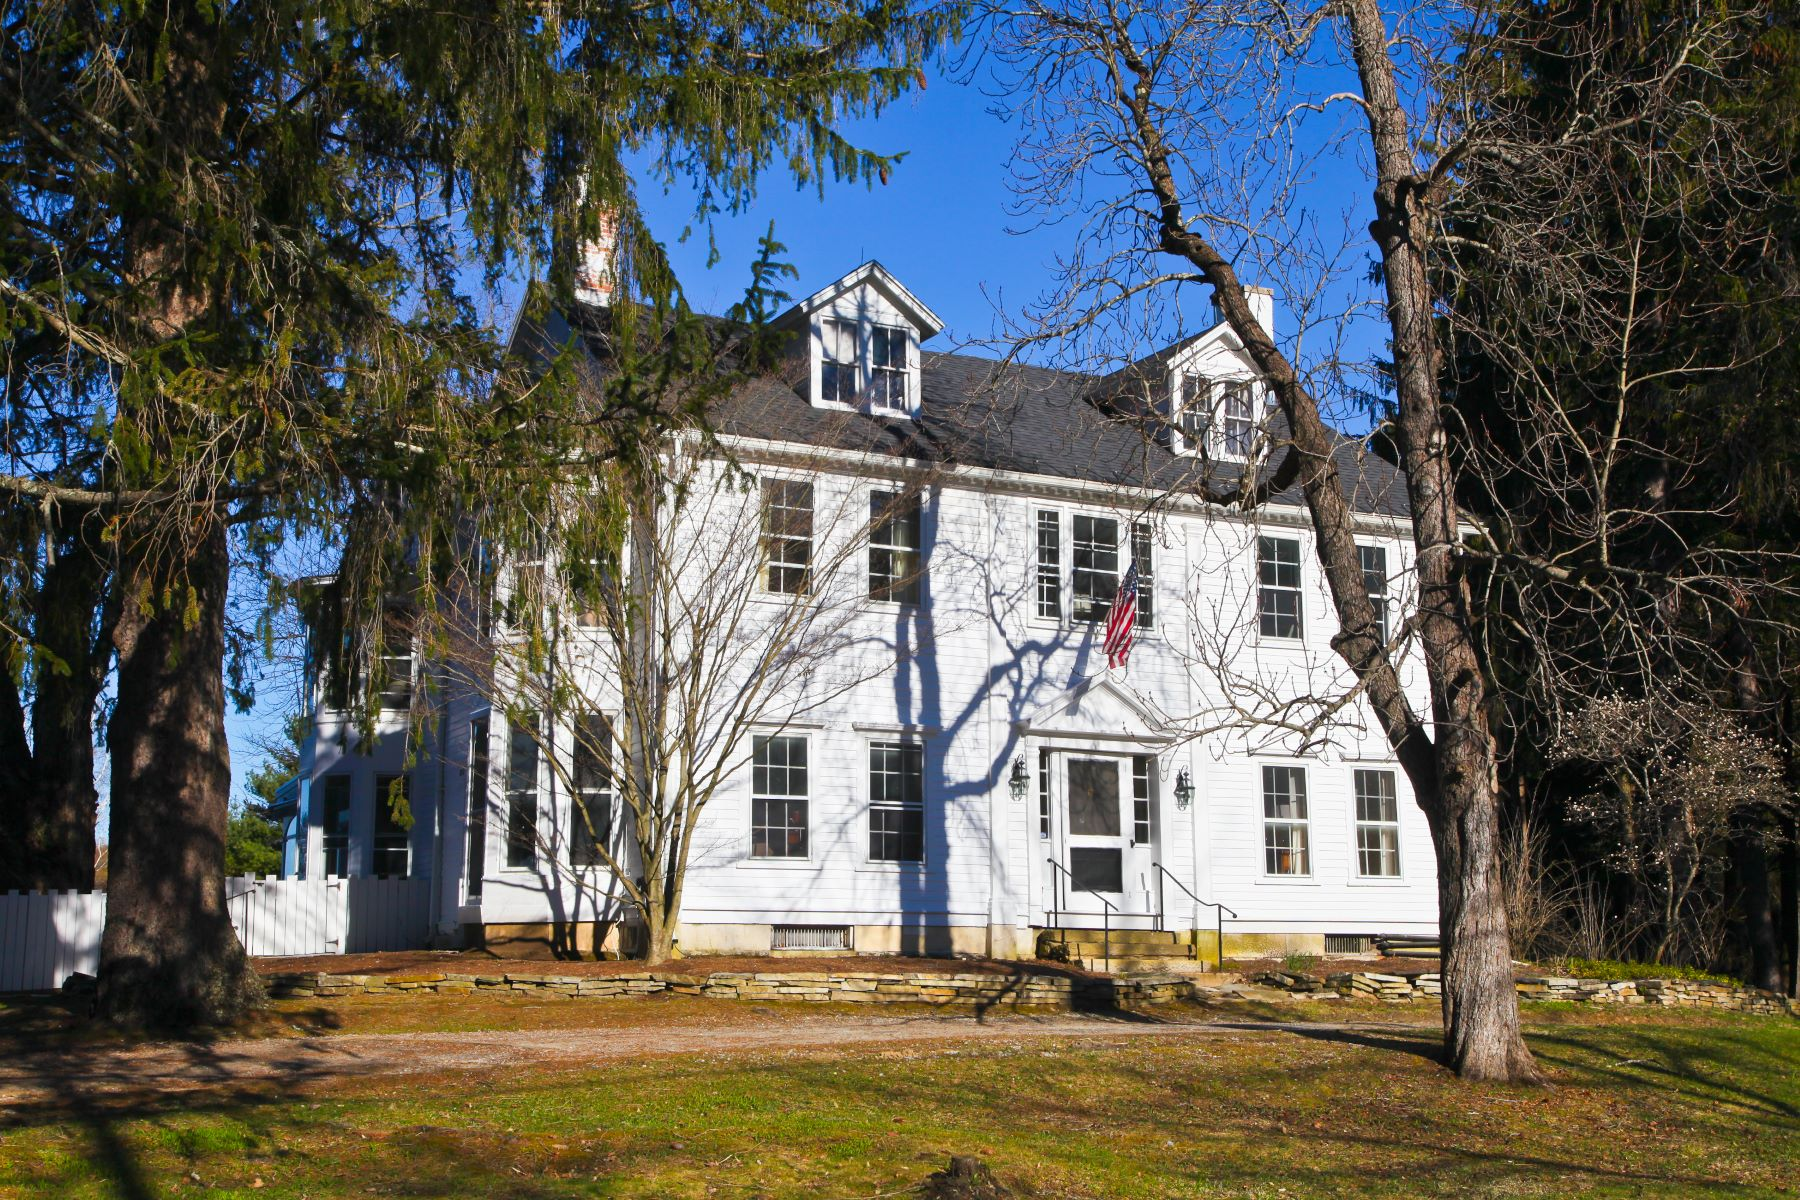 Single Family Home for Sale at Historic Splendor & Breathtaking Mountain Views 29 Prospect Hill Rd Stockbridge, Massachusetts 01262 United States